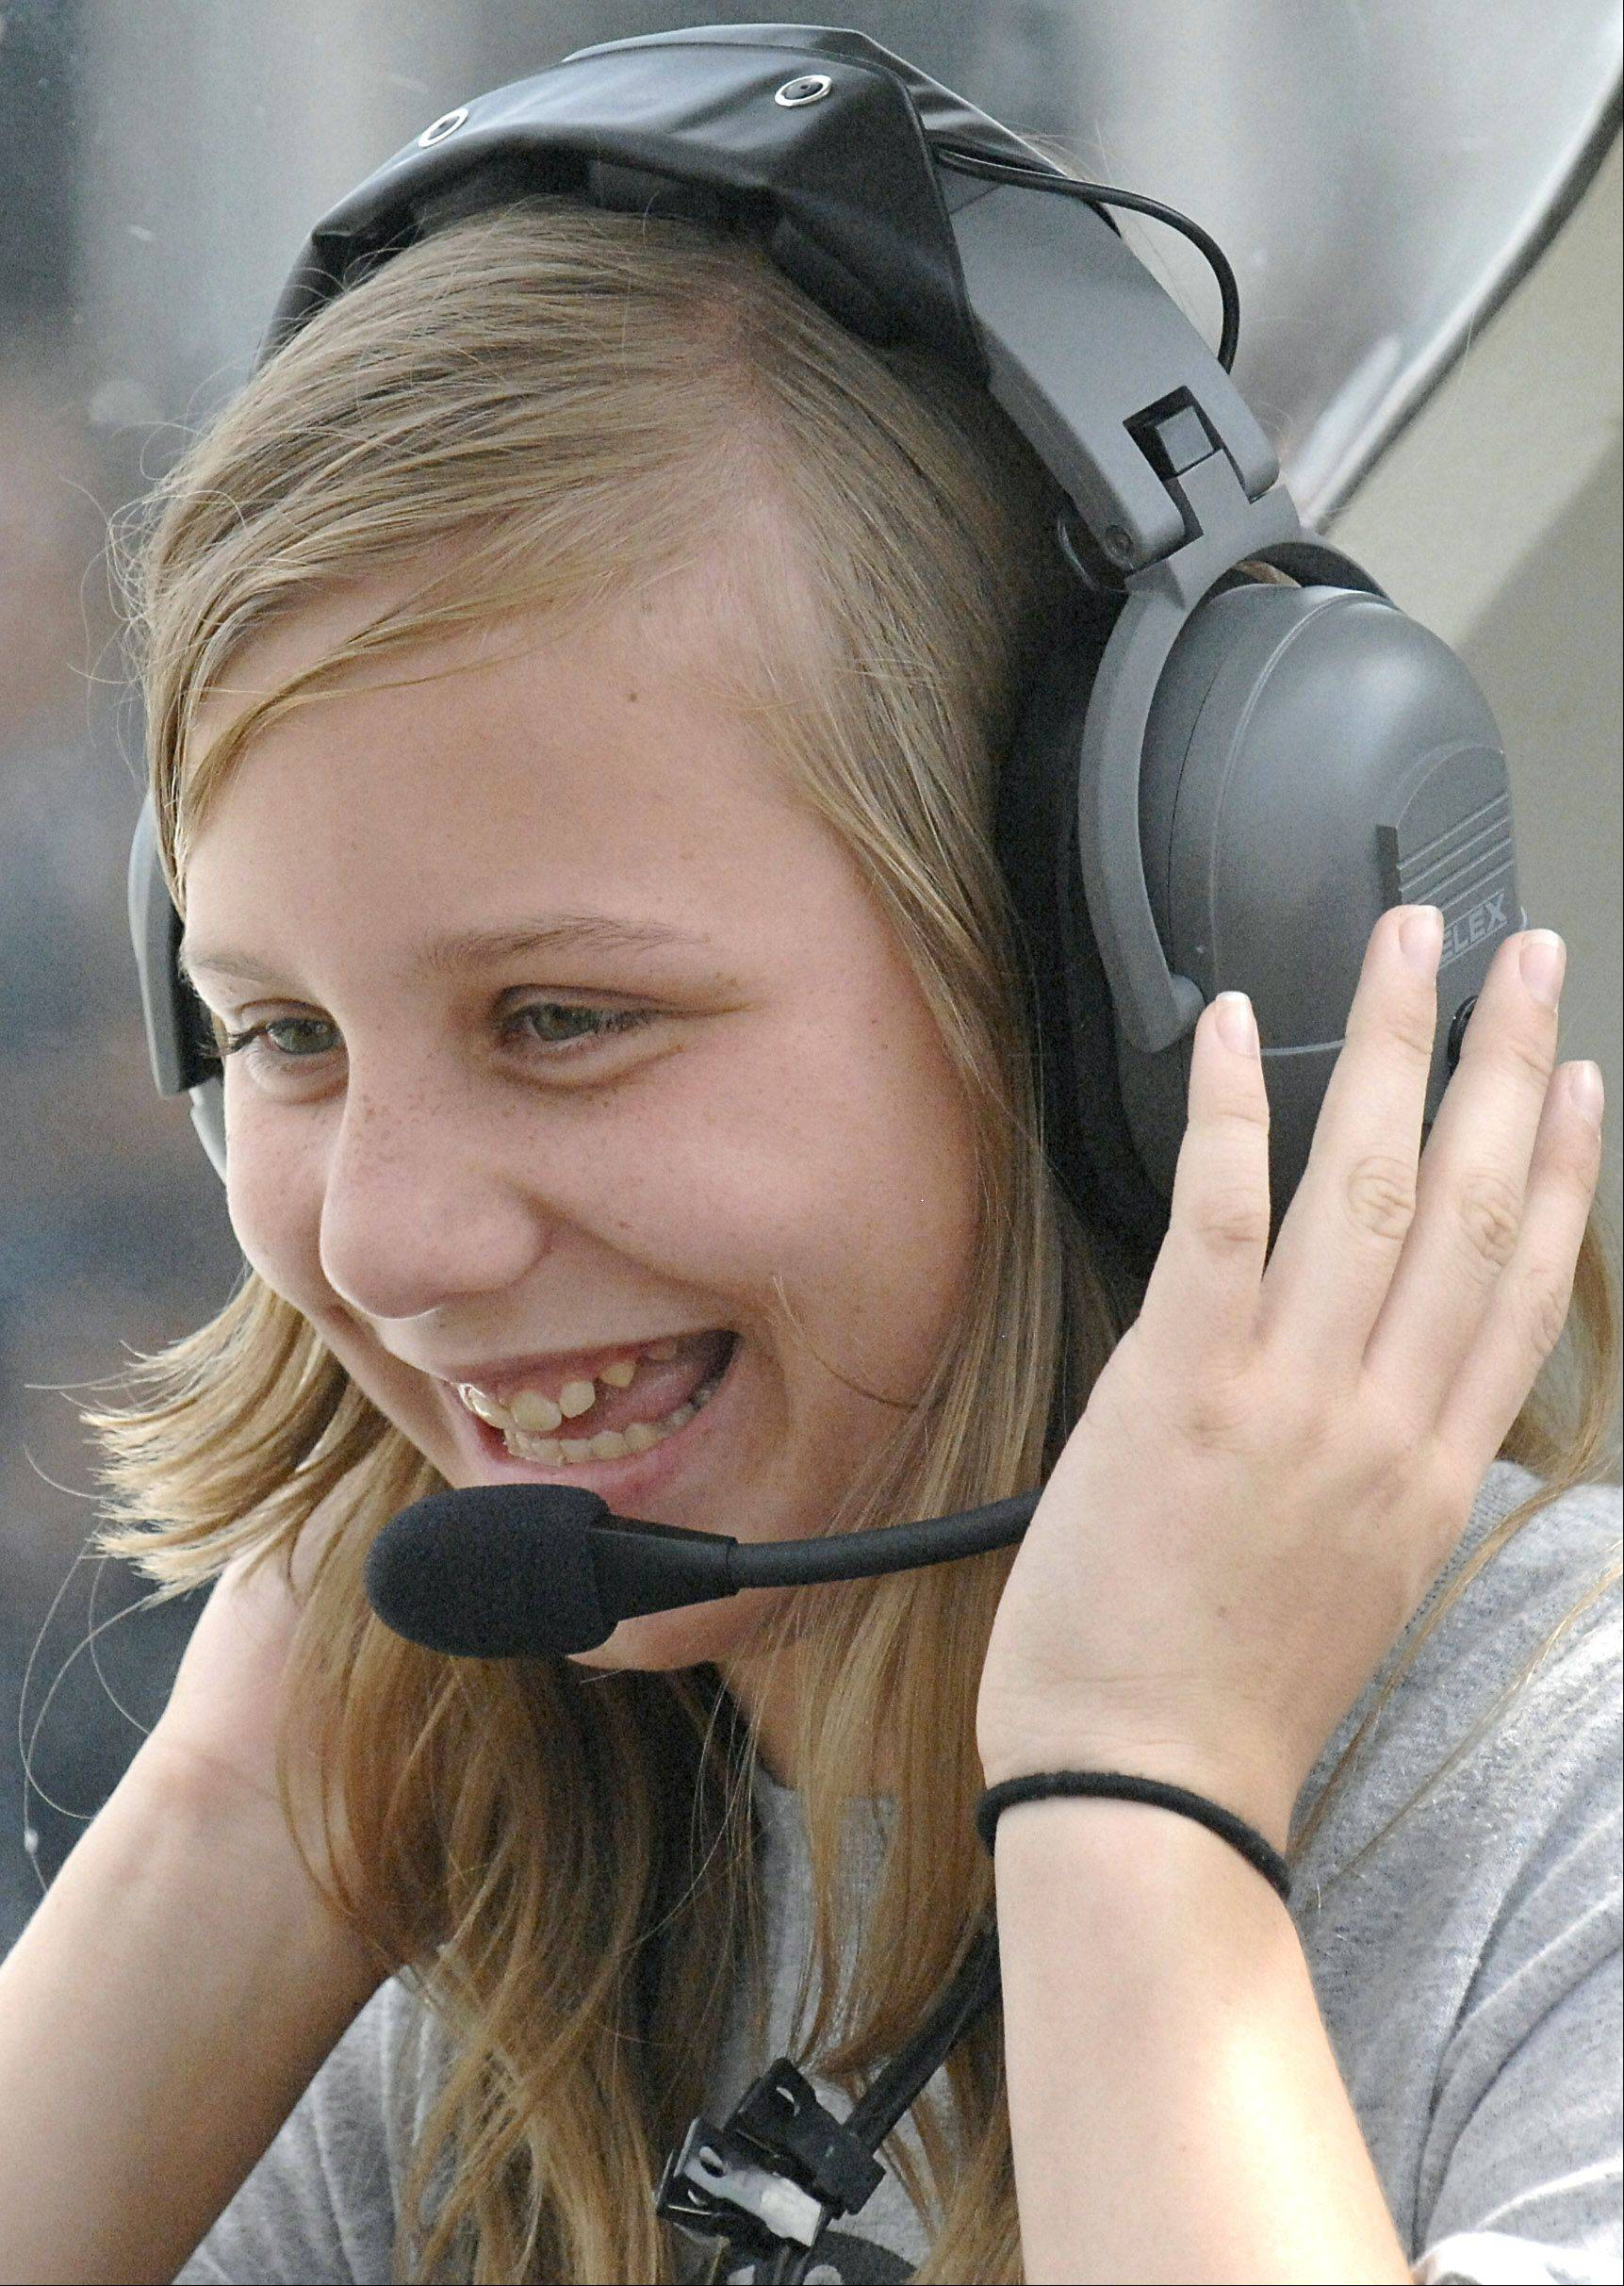 Morgan Hurley, 11, of Wentzville, Mo., giggles with excitement before taking off in Cary pilot Ole Sindberg's Prescott Pusher plane at Lake in the Hills Airport on Saturday. Hurley, joined by her twin sister, Paige, were visiting their cousin Lexi Yates, 9, of Crystal Lake and their grandparents Ray and Barbara Wolke of Chicago.